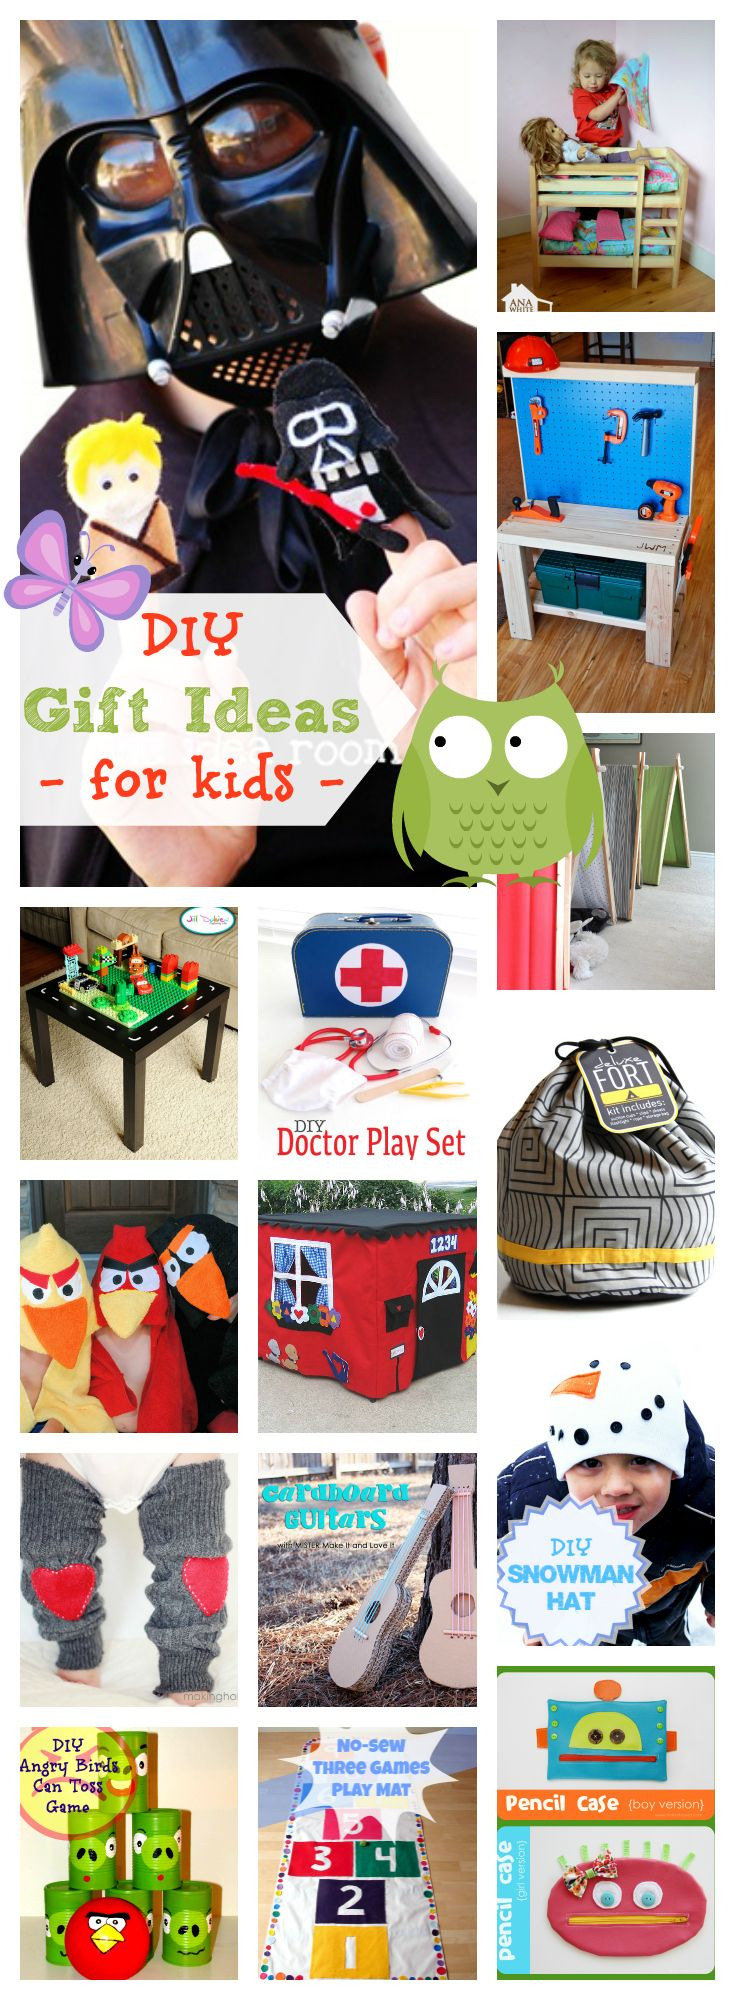 75 Awesome Diy Gifts For Kids Handpicked By A 10 Year